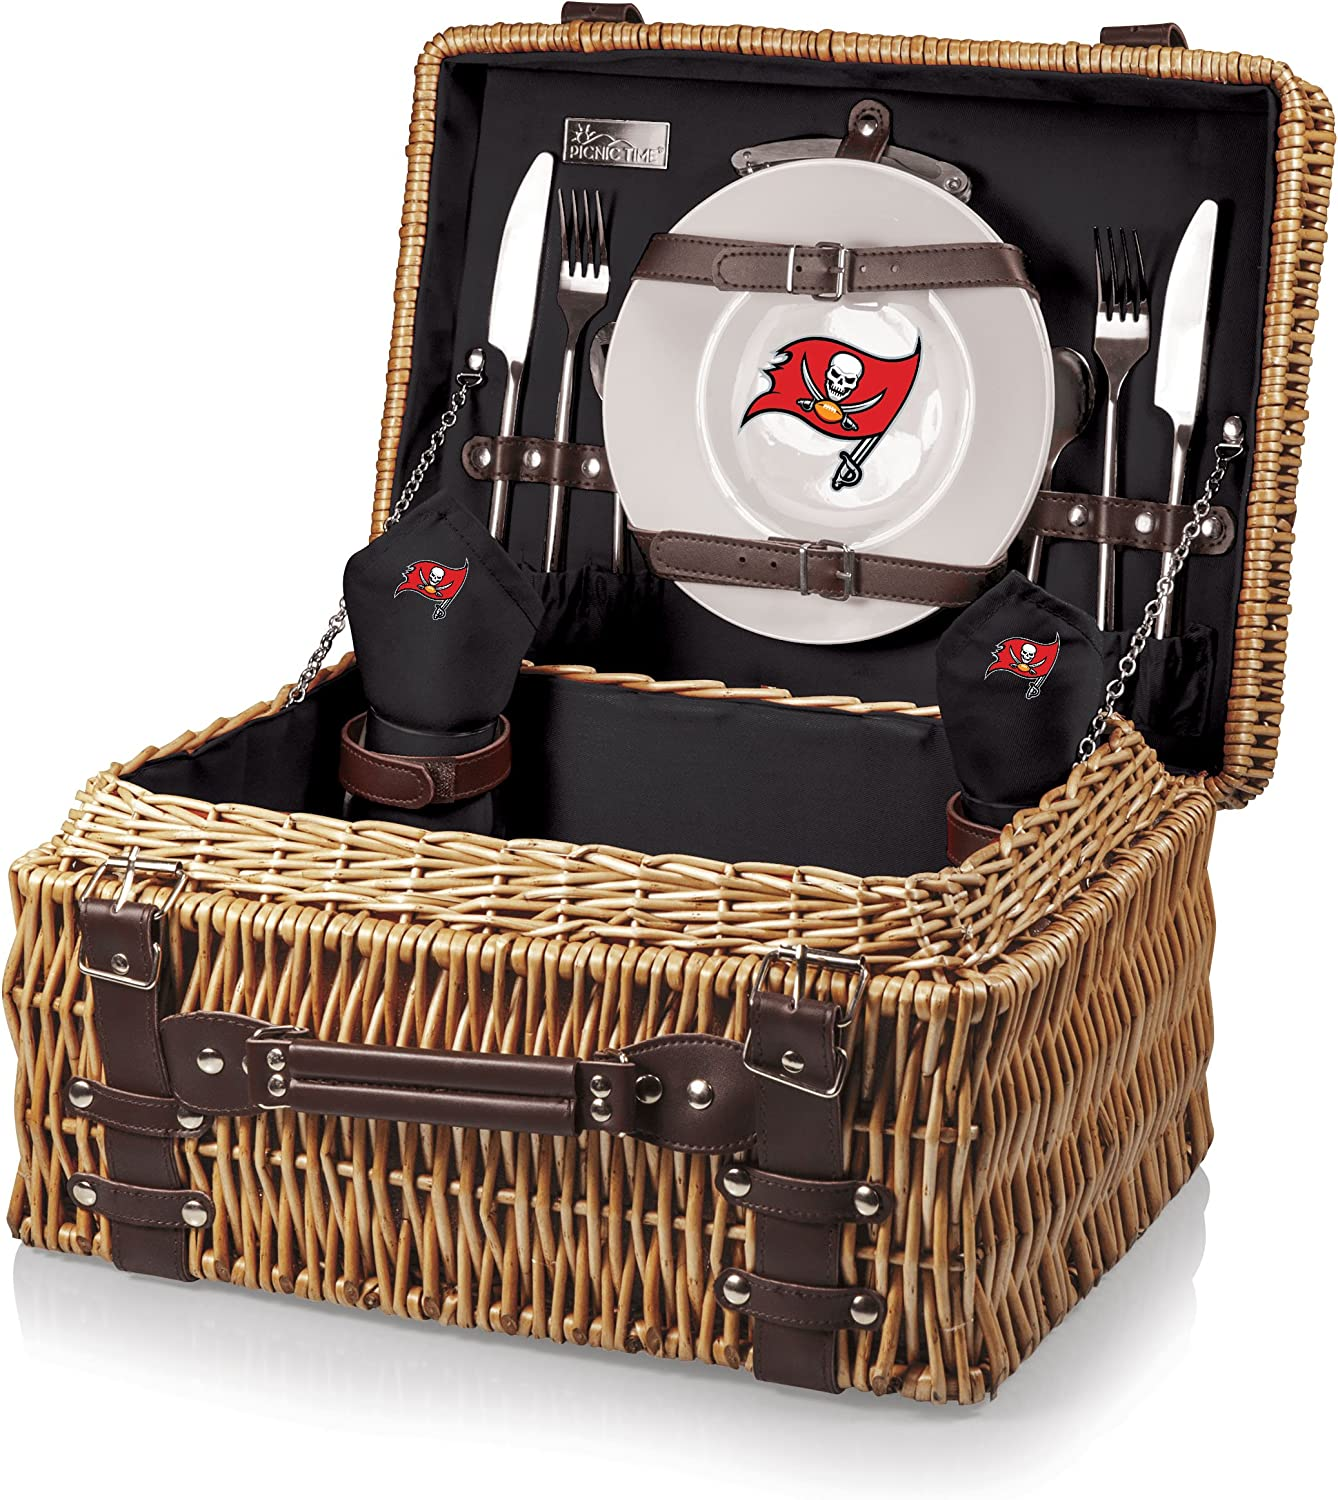 NFL Tampa Bay Buccaneers Champion Picnic Basket with Deluxe Service for Two, Black